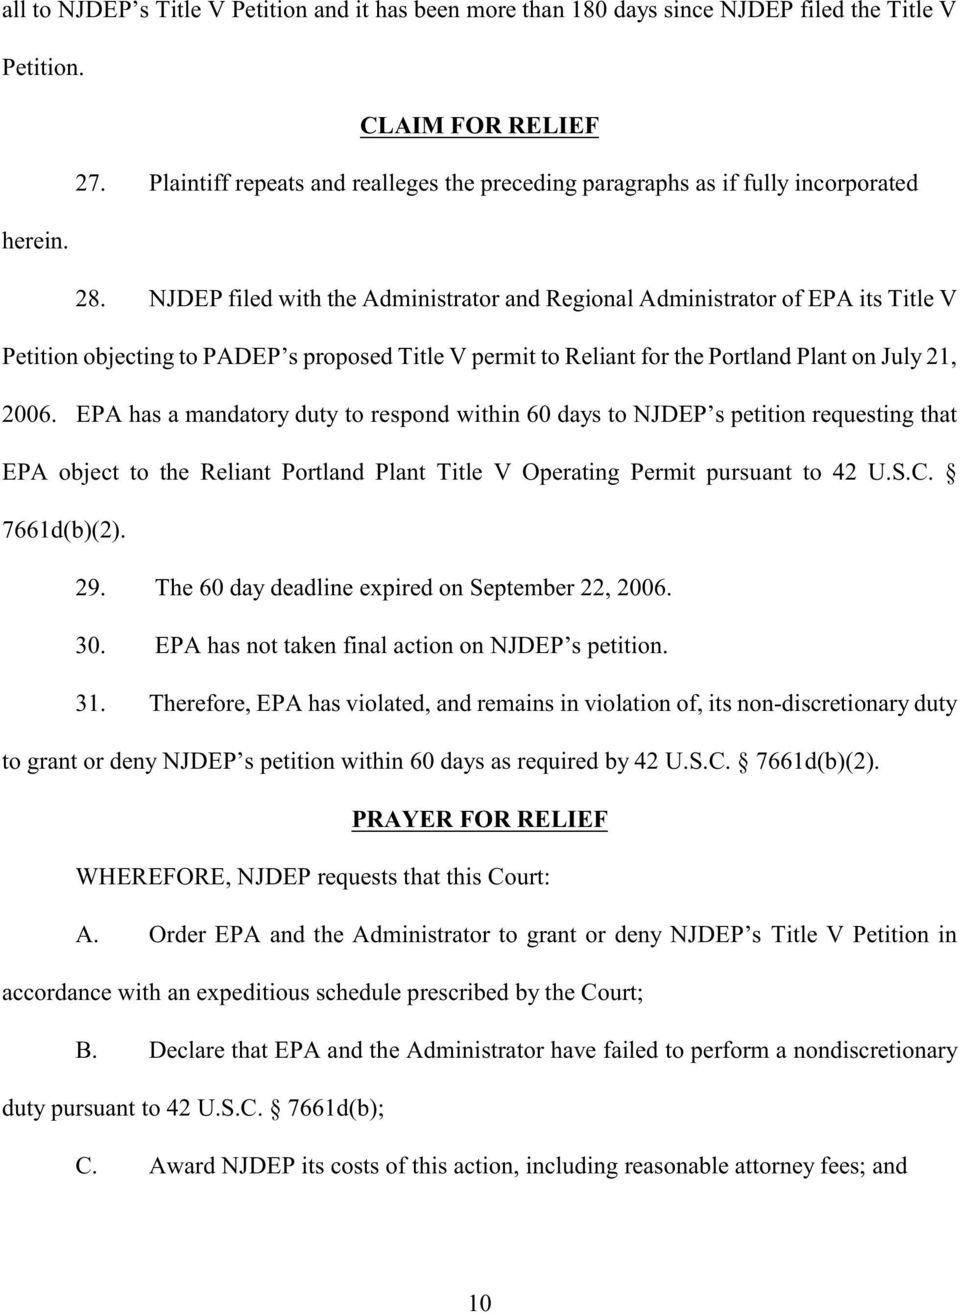 NJDEP filed with the Administrator and Regional Administrator of EPA its Title V Petition objecting to PADEP s proposed Title V permit to Reliant for the Portland Plant on July 21, 2006.